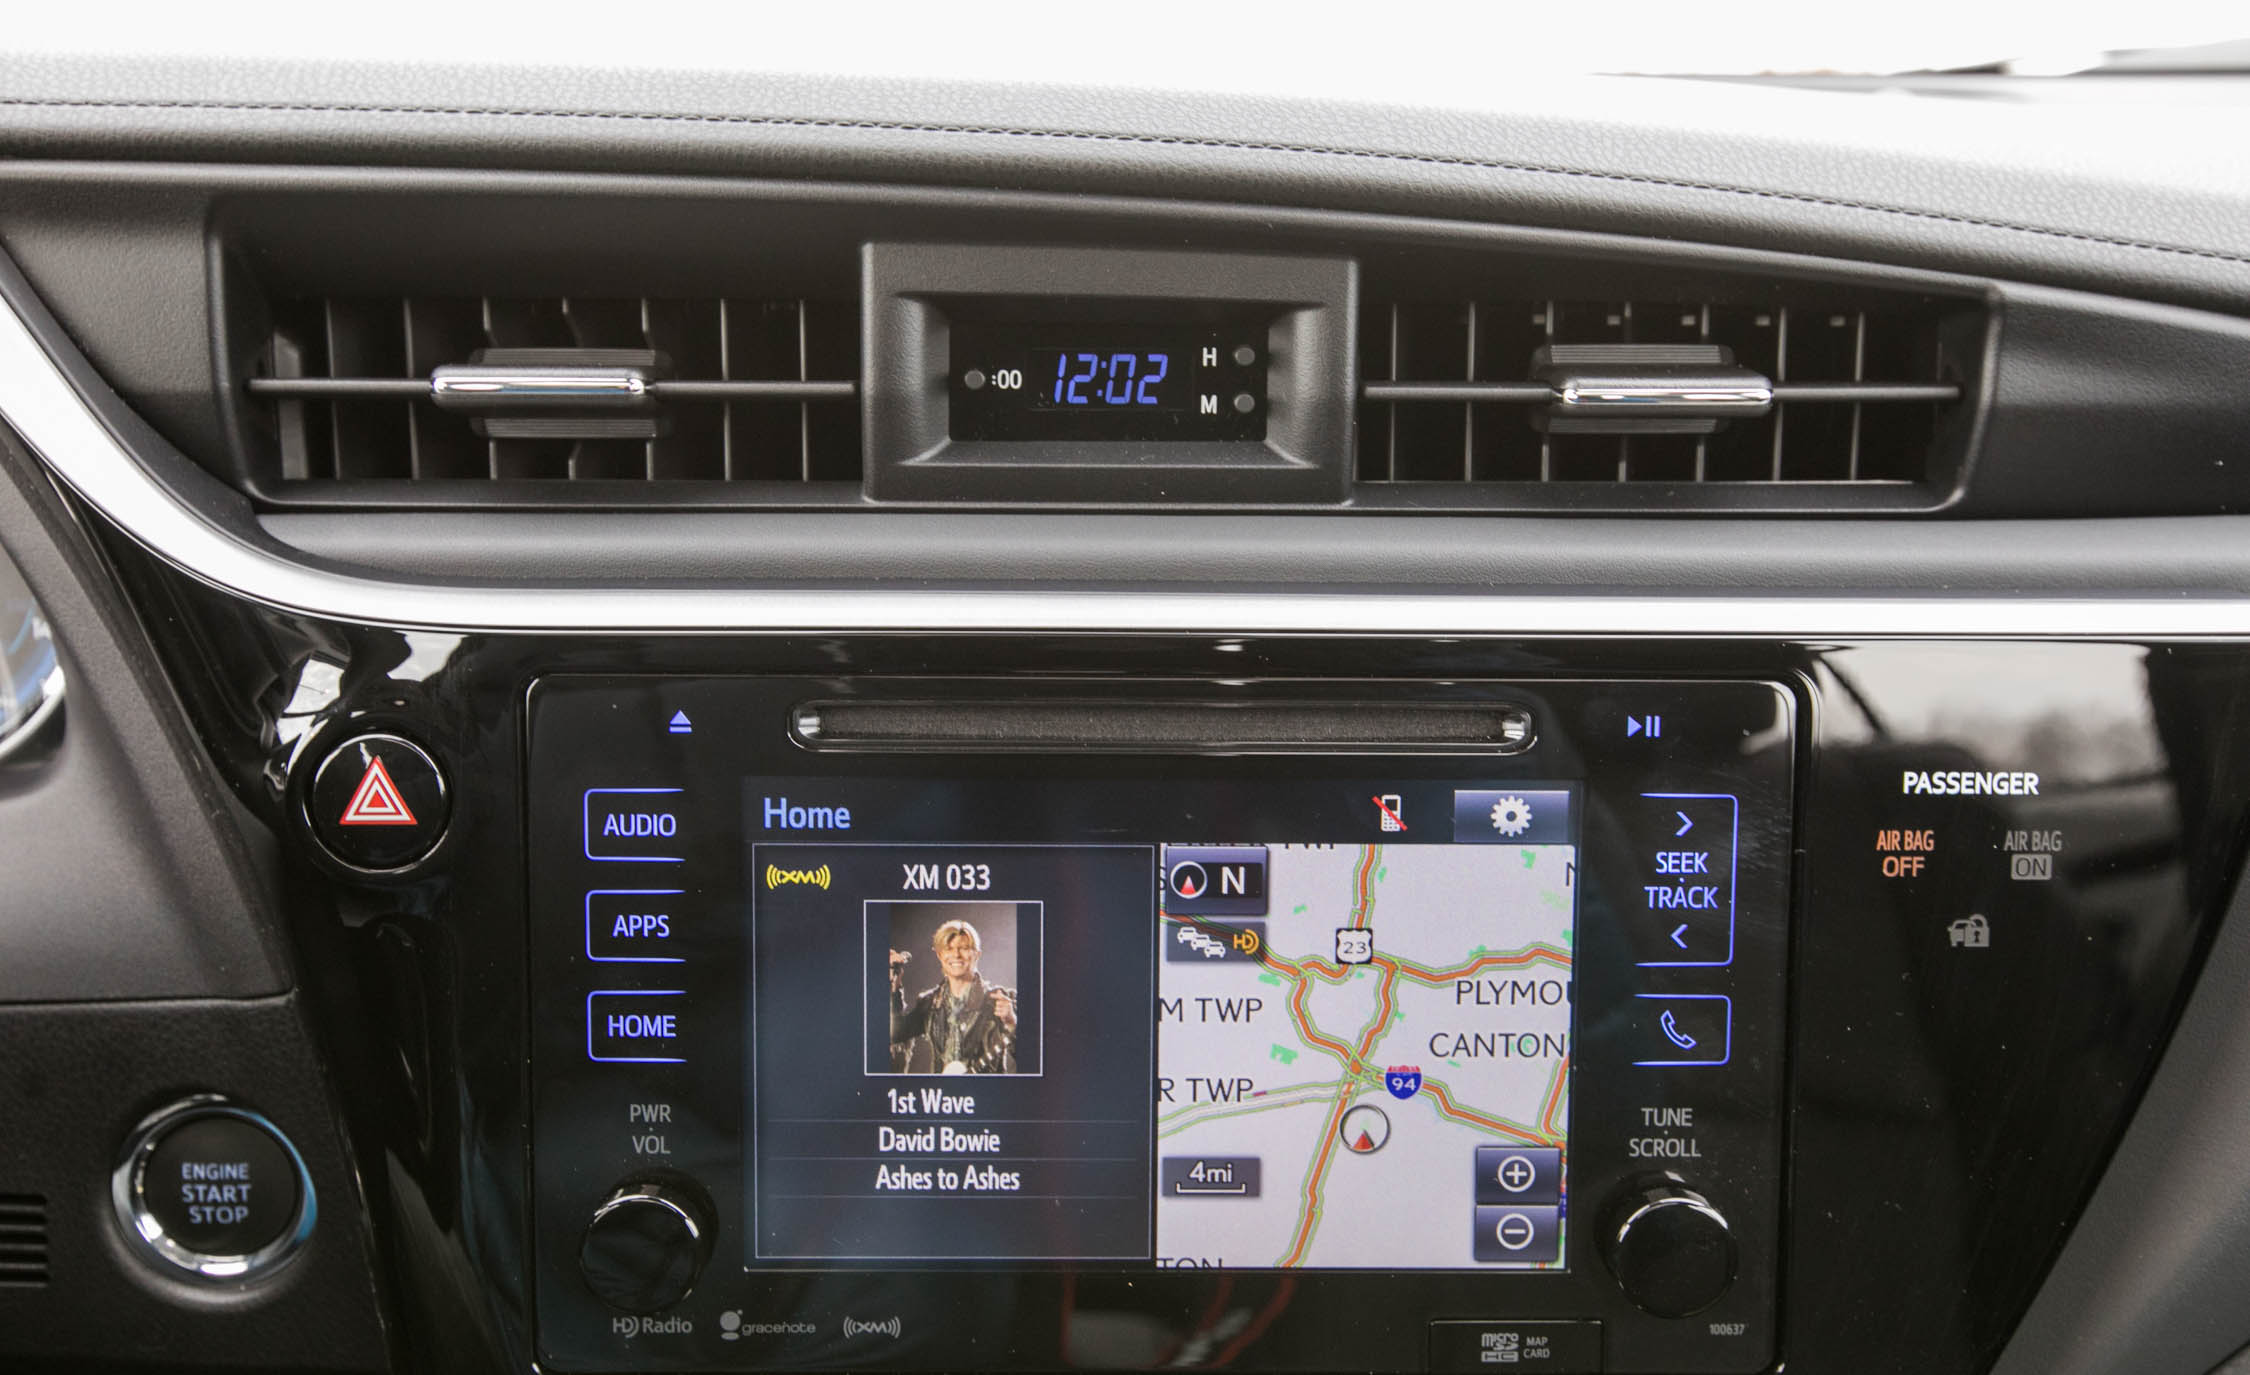 2017 Toyota Corolla XSE Interior View Headunit And Clock (Photo 60 of 75)